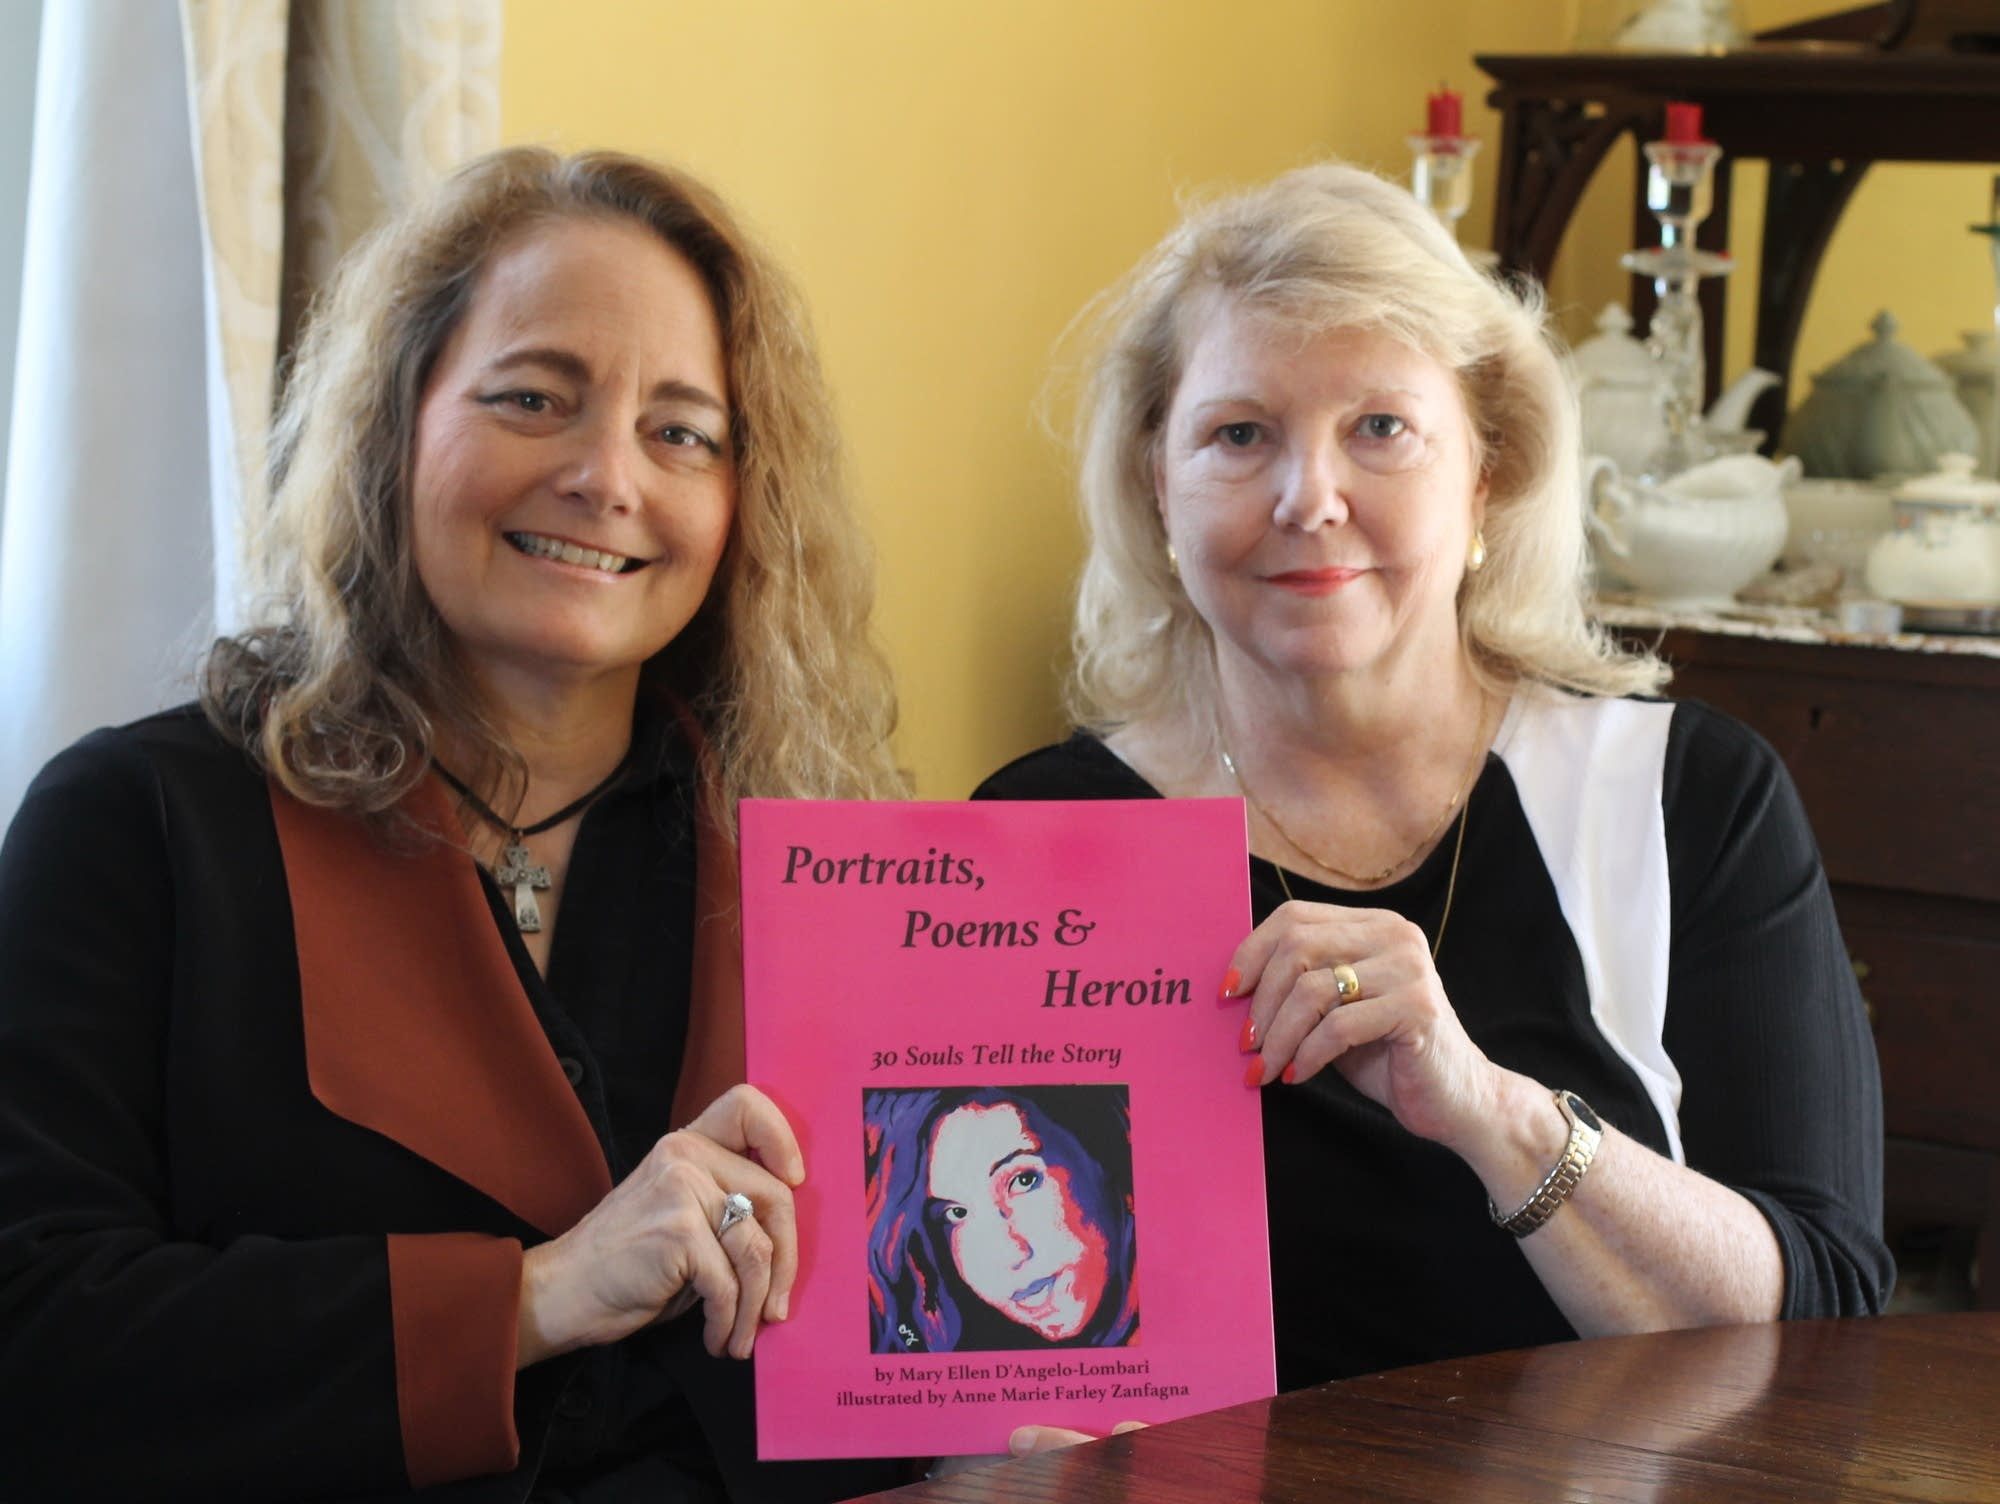 Poet Mary Ellen D'Angelo-Lombardi (left) and artist Anne Marie Zanfagna